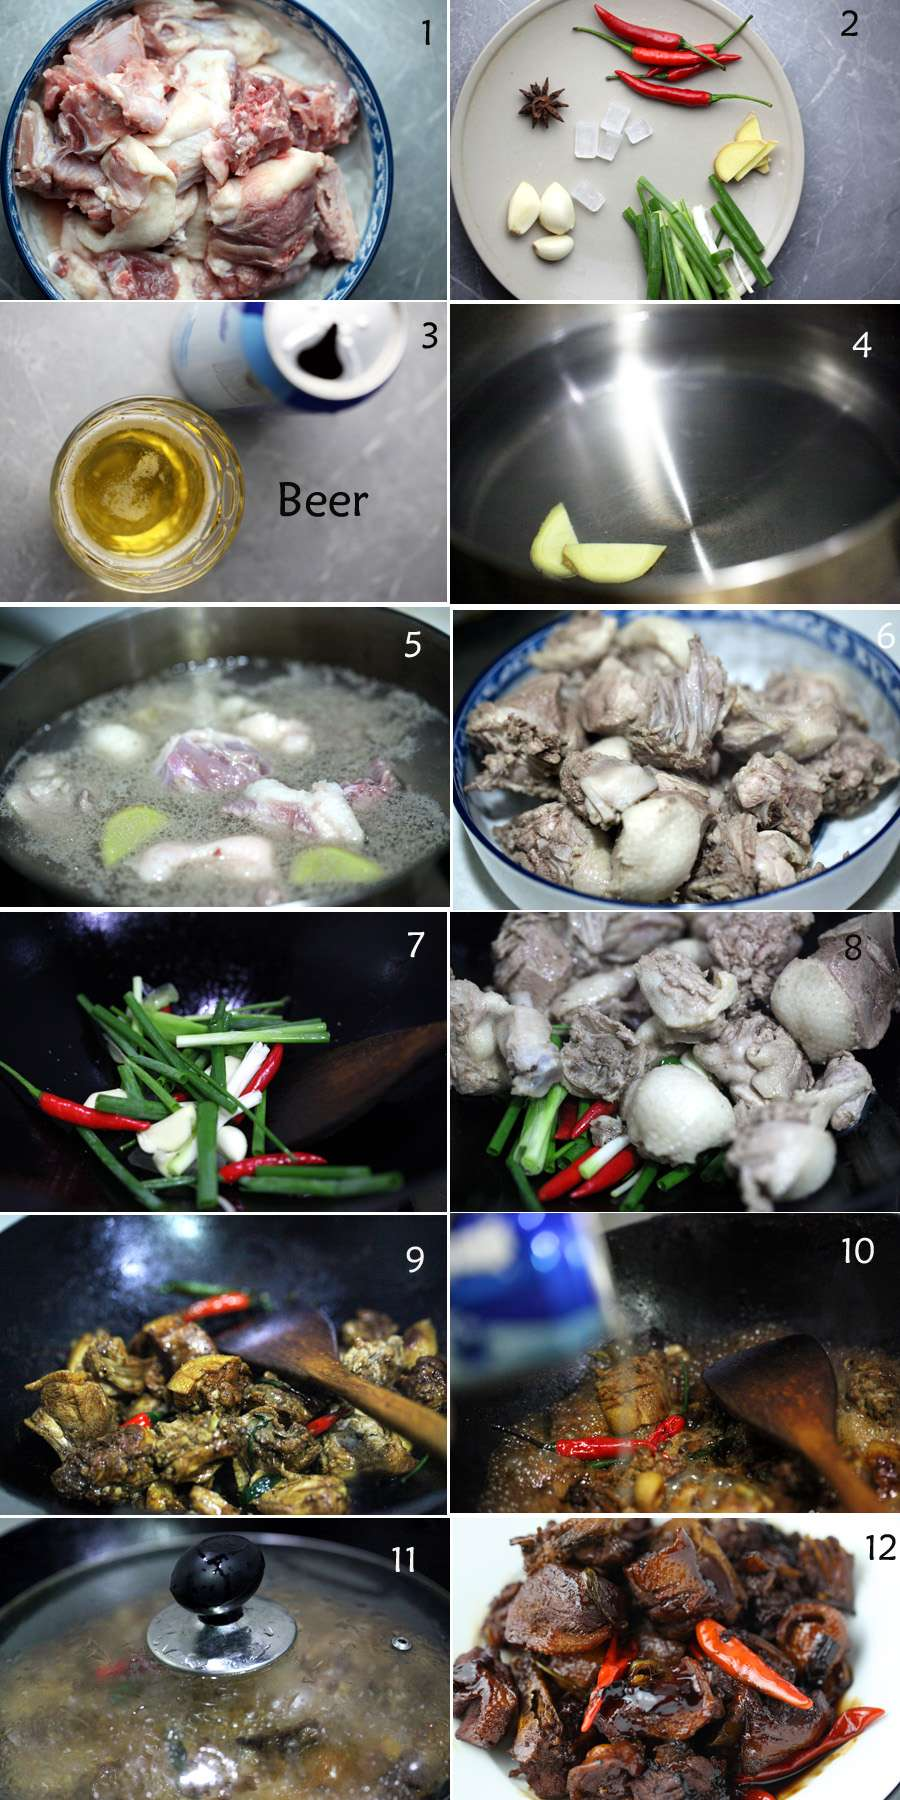 1)Ingredients: Duck pieces,2) star anise, rock sugar, small red chili, garlic, scallion secions,3)one can beer,4)add ginger to water,5) blanching duck, 6),transfer to a plate,7) add scallion, red chili, garlic to a wok, 8) add duck then stir-frying,9)add soy sauce and salt, 10)add beer,11) cover with a lid, 12) It is done.